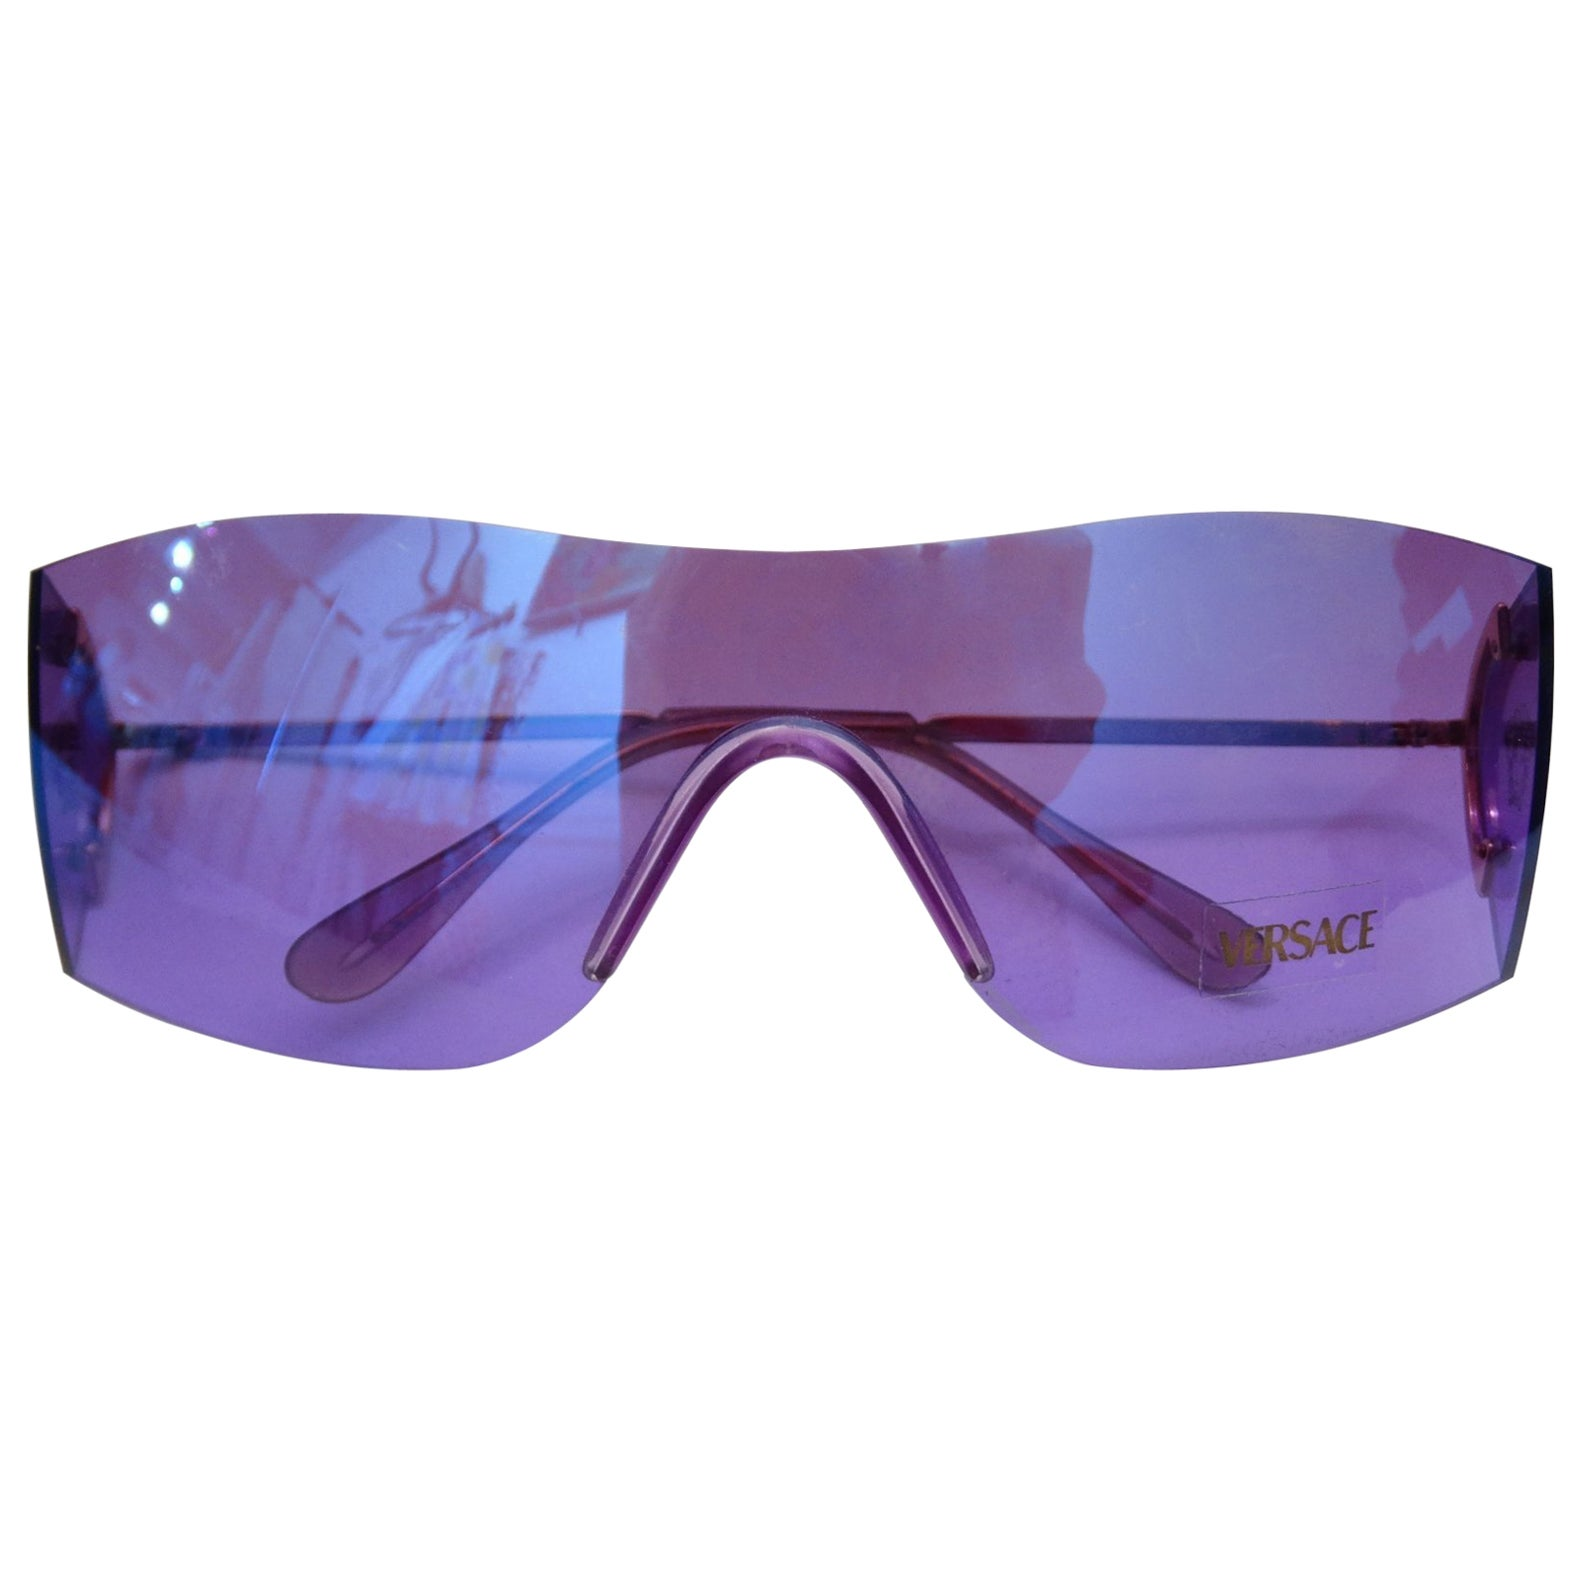 44a0a958a8d 1990s Versace Purple Iridescent Shield Sunglasses at 1stdibs